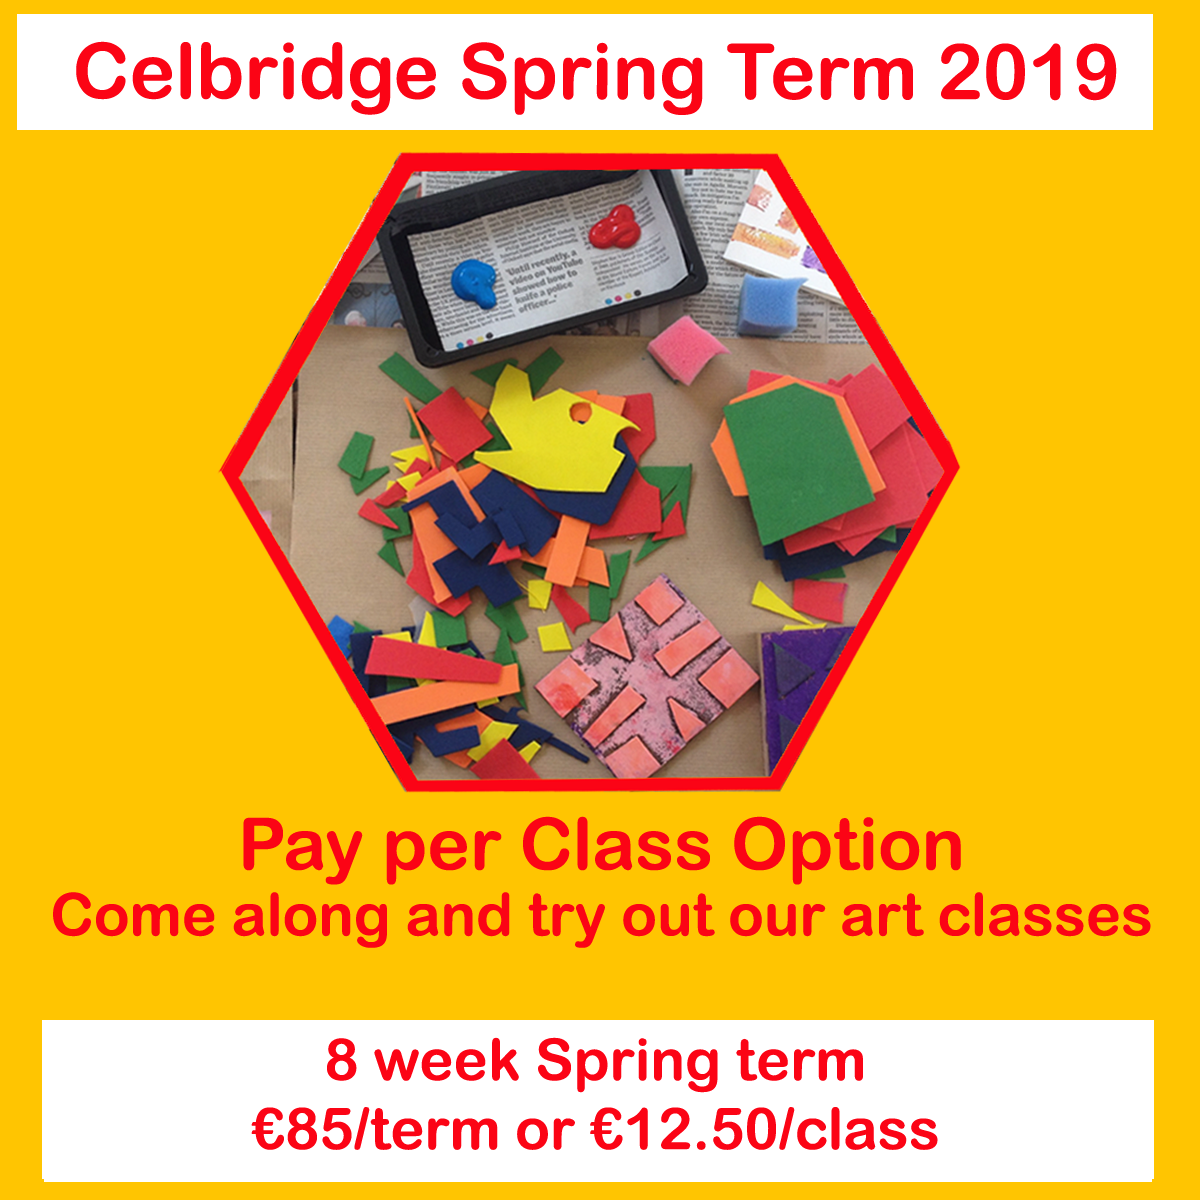 pay per class option in celbridge art classes for kids